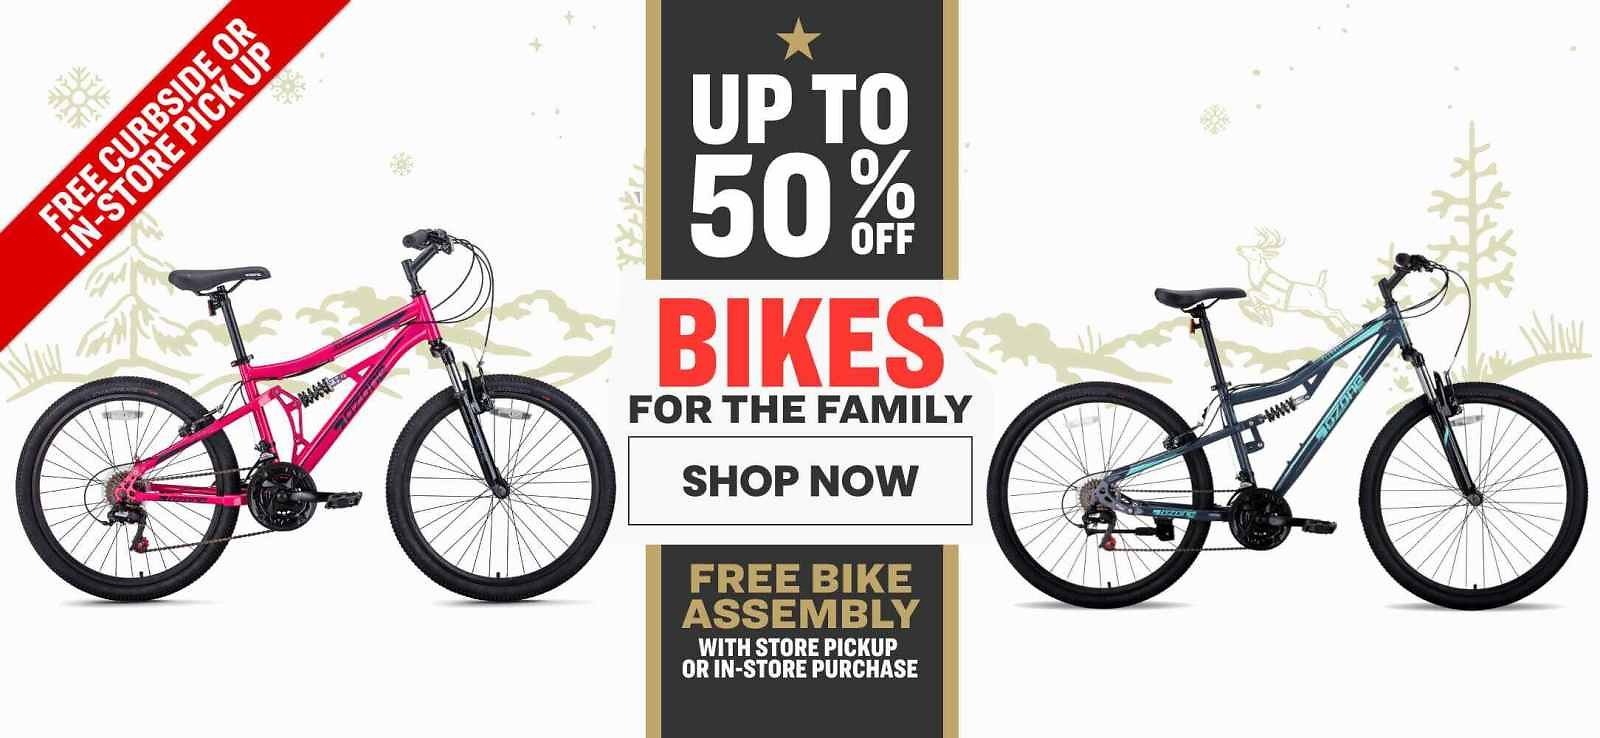 Up to 50% Off Bike For Family